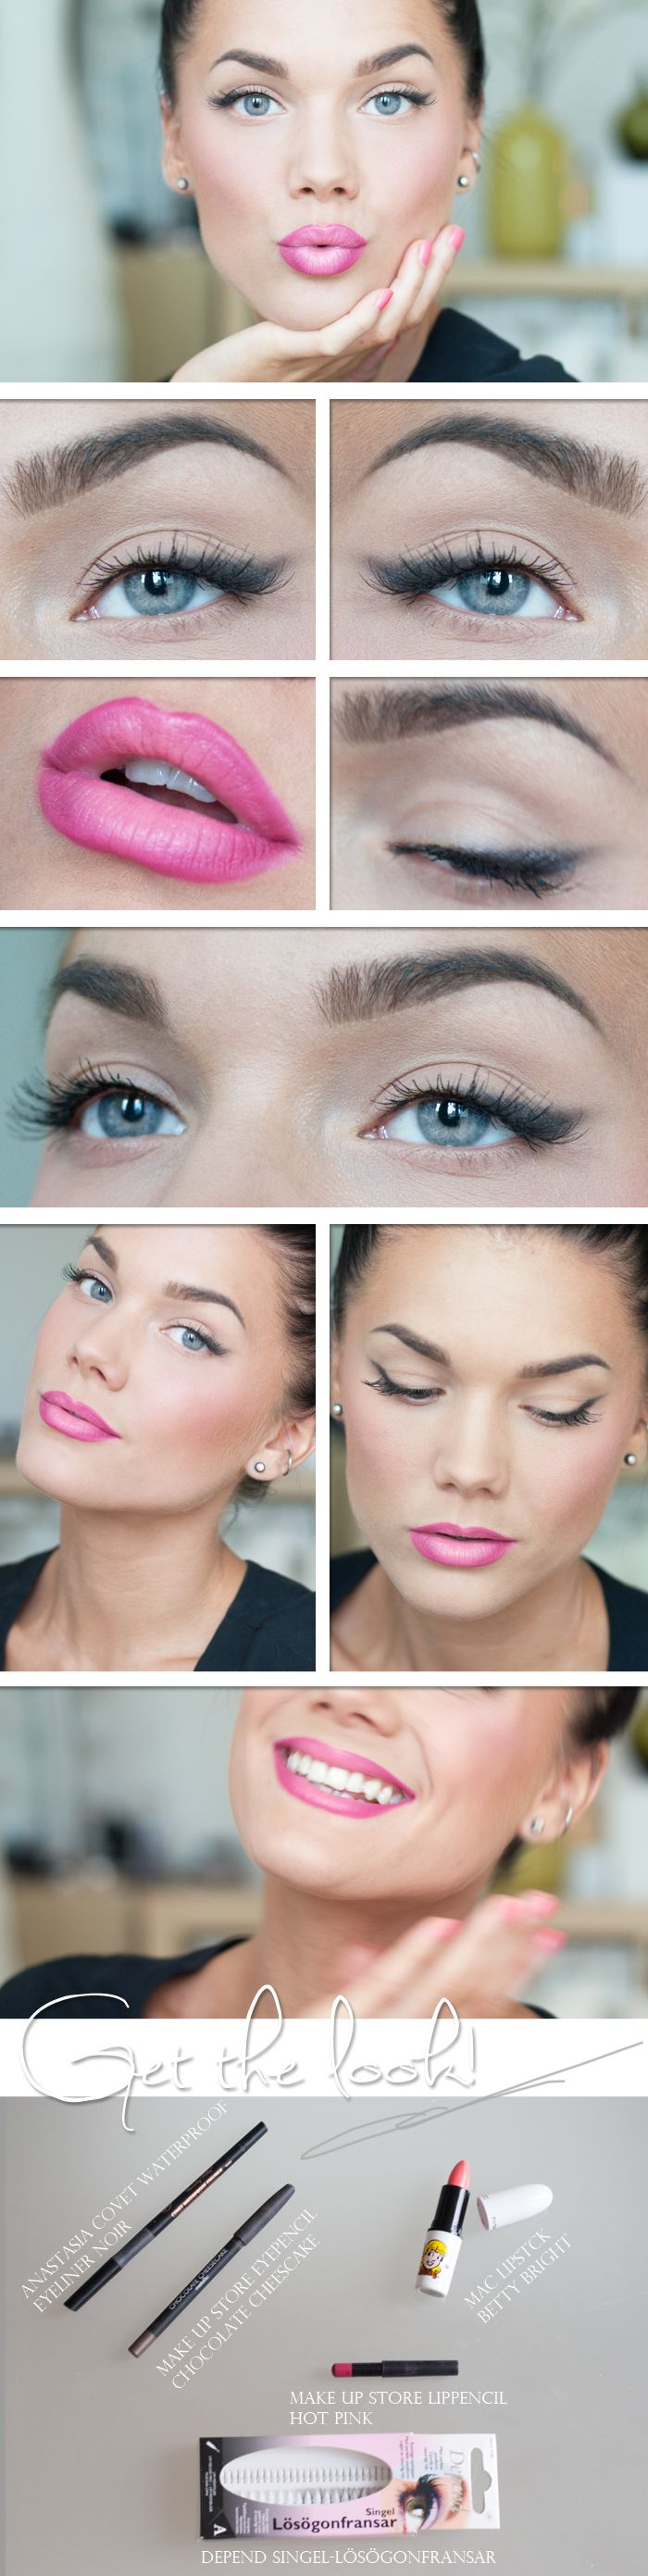 Linda Hallberg - Simple eyes, bright pink pout!